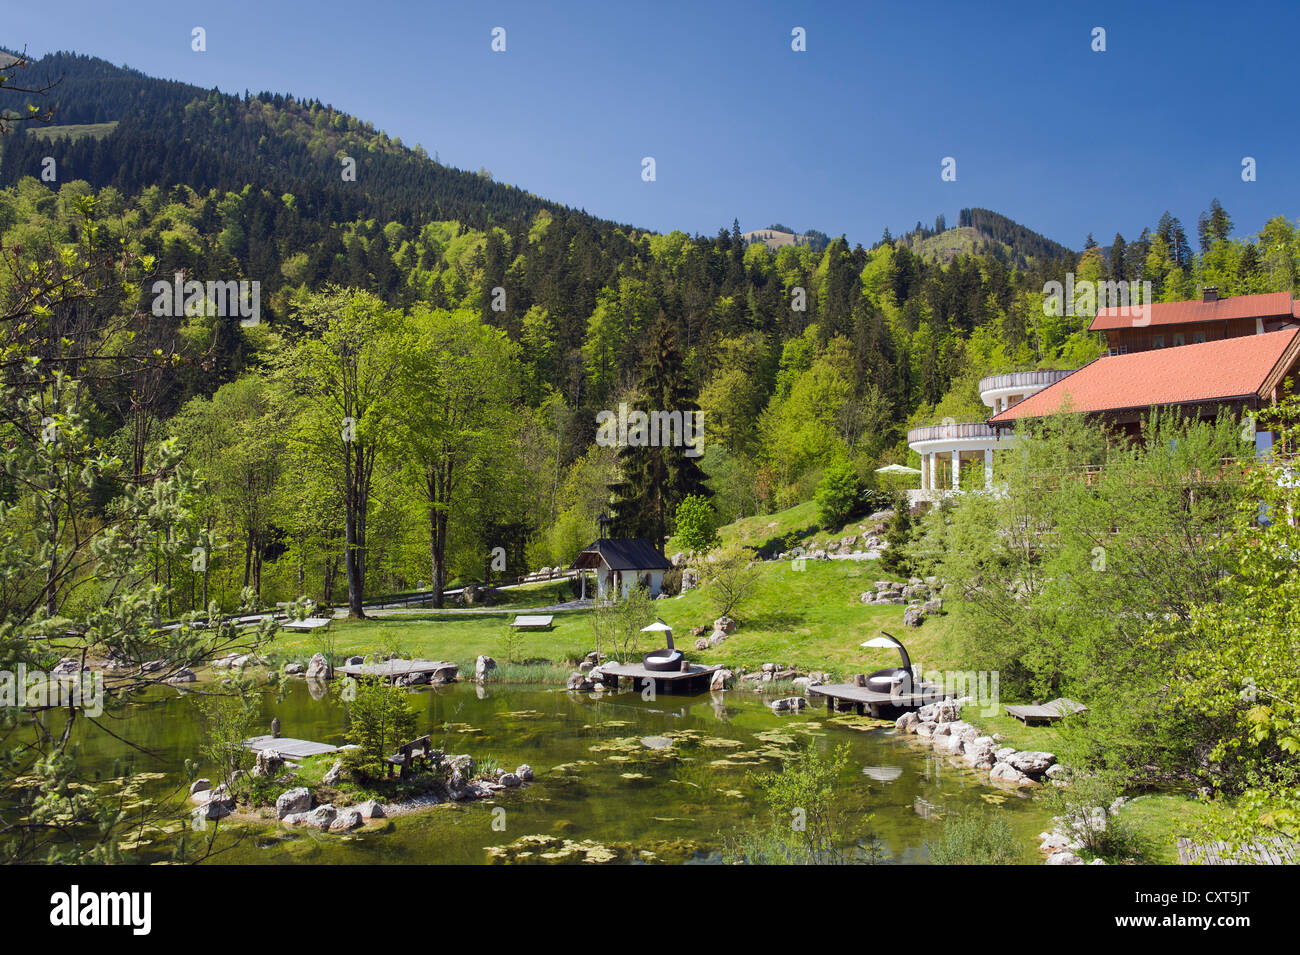 Hotel restaurant at Tatzelwurm lake, Bavarian Alps, Upper Bavaria, Bavaria, Germany, Europe - Stock Image